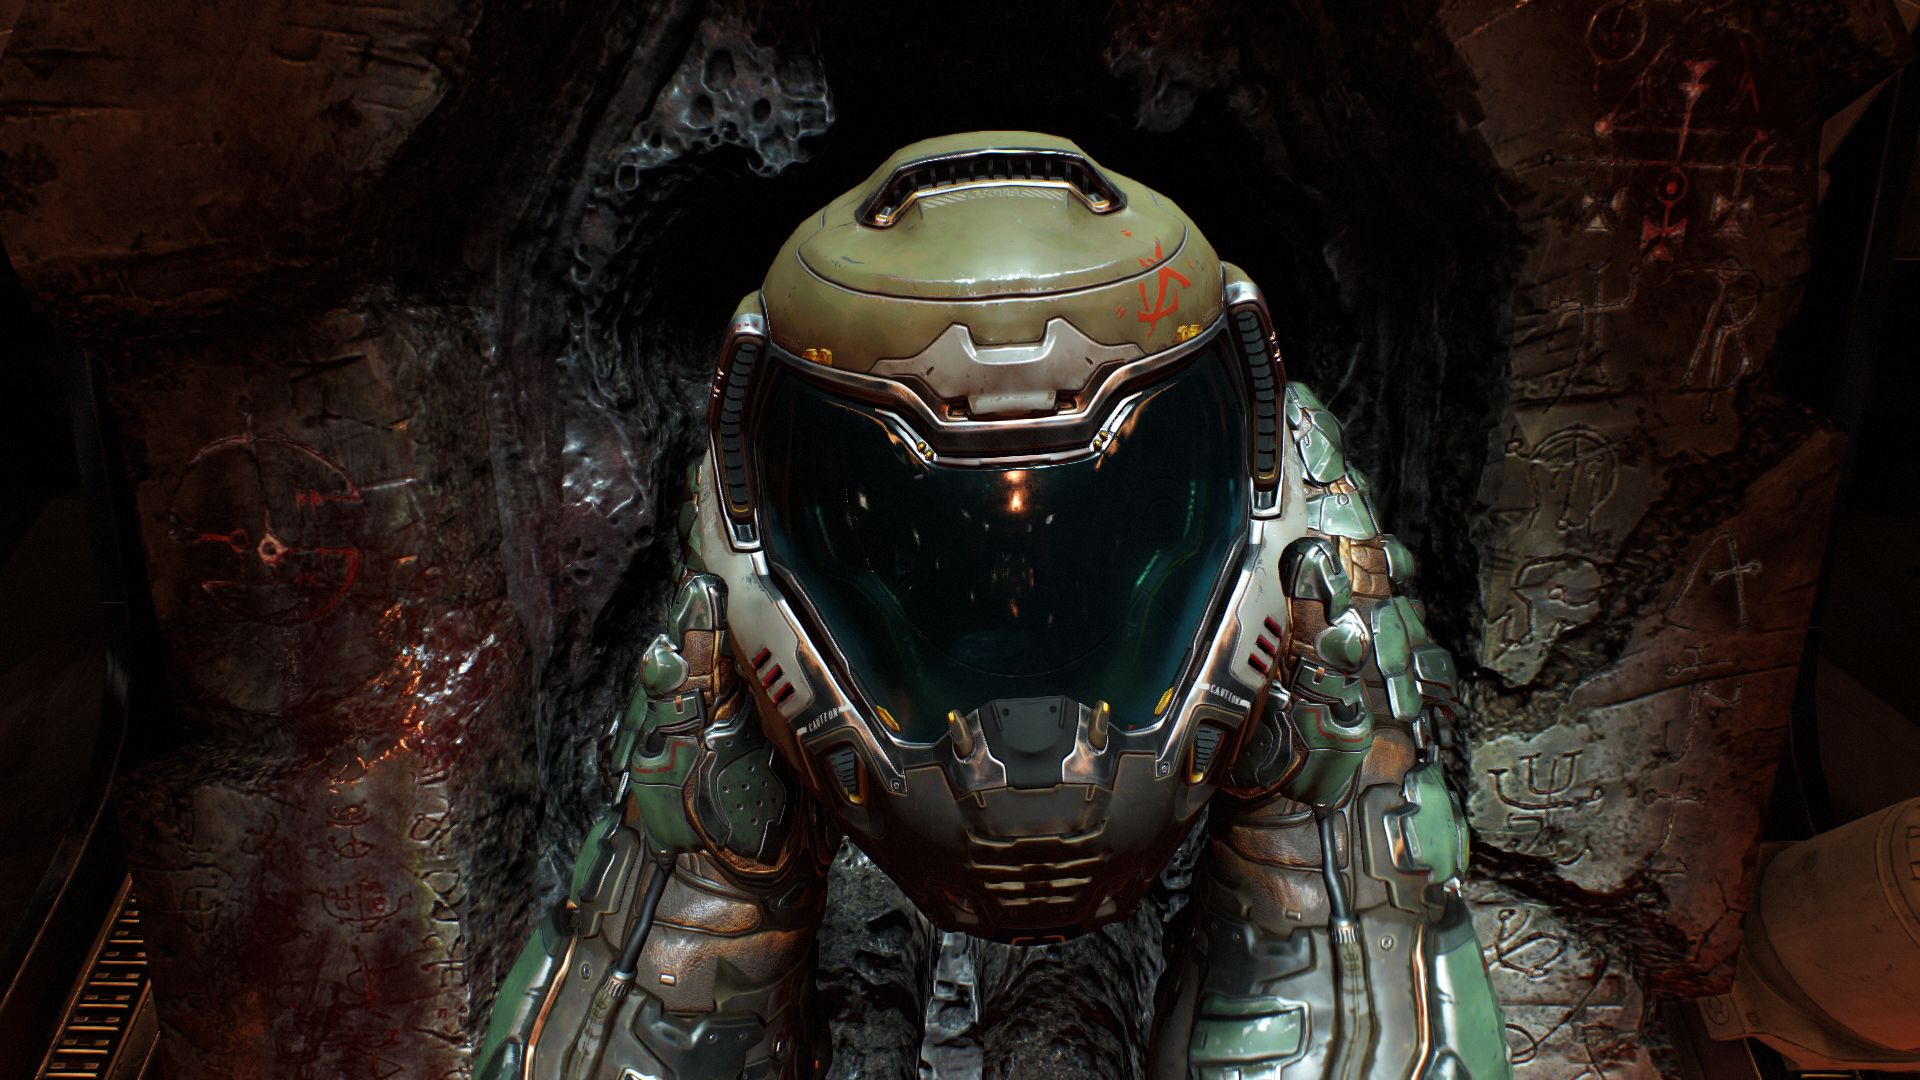 Finding an updated take on the classic Doom Marine Armor is incredibly exciting.